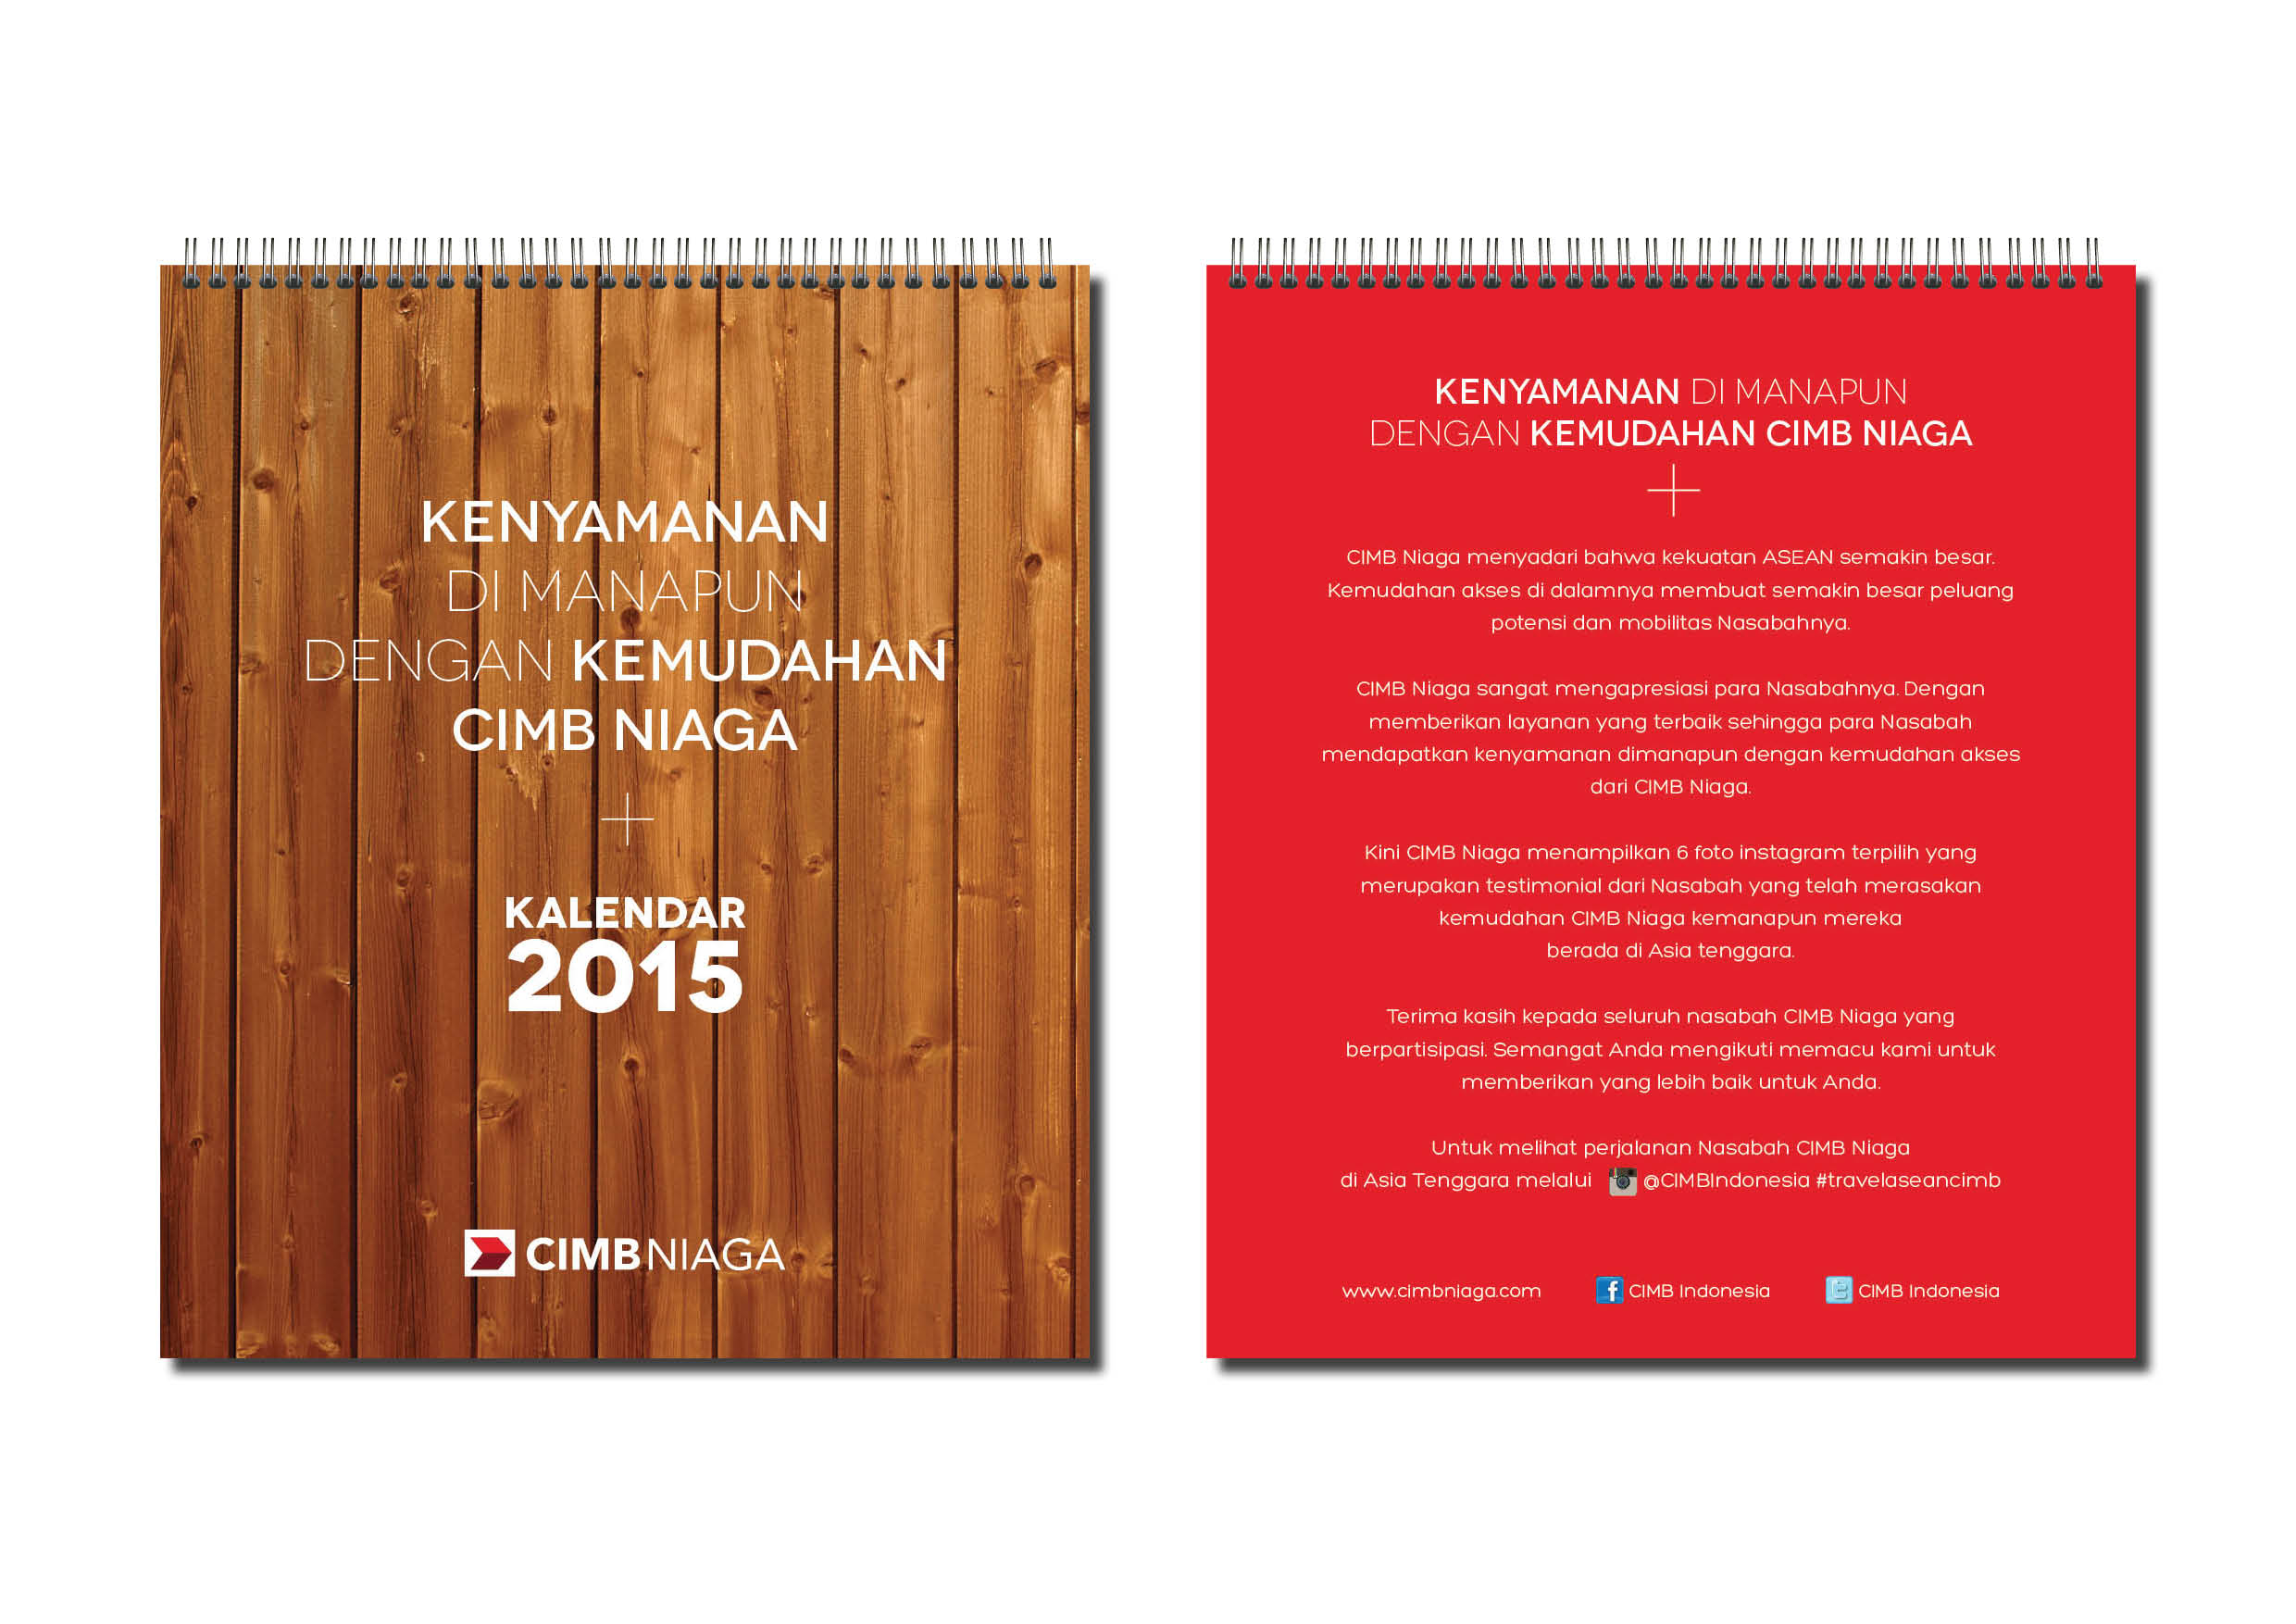 Cimb Niaga Calendar Agenda Corporate Greeting Cards Victoria